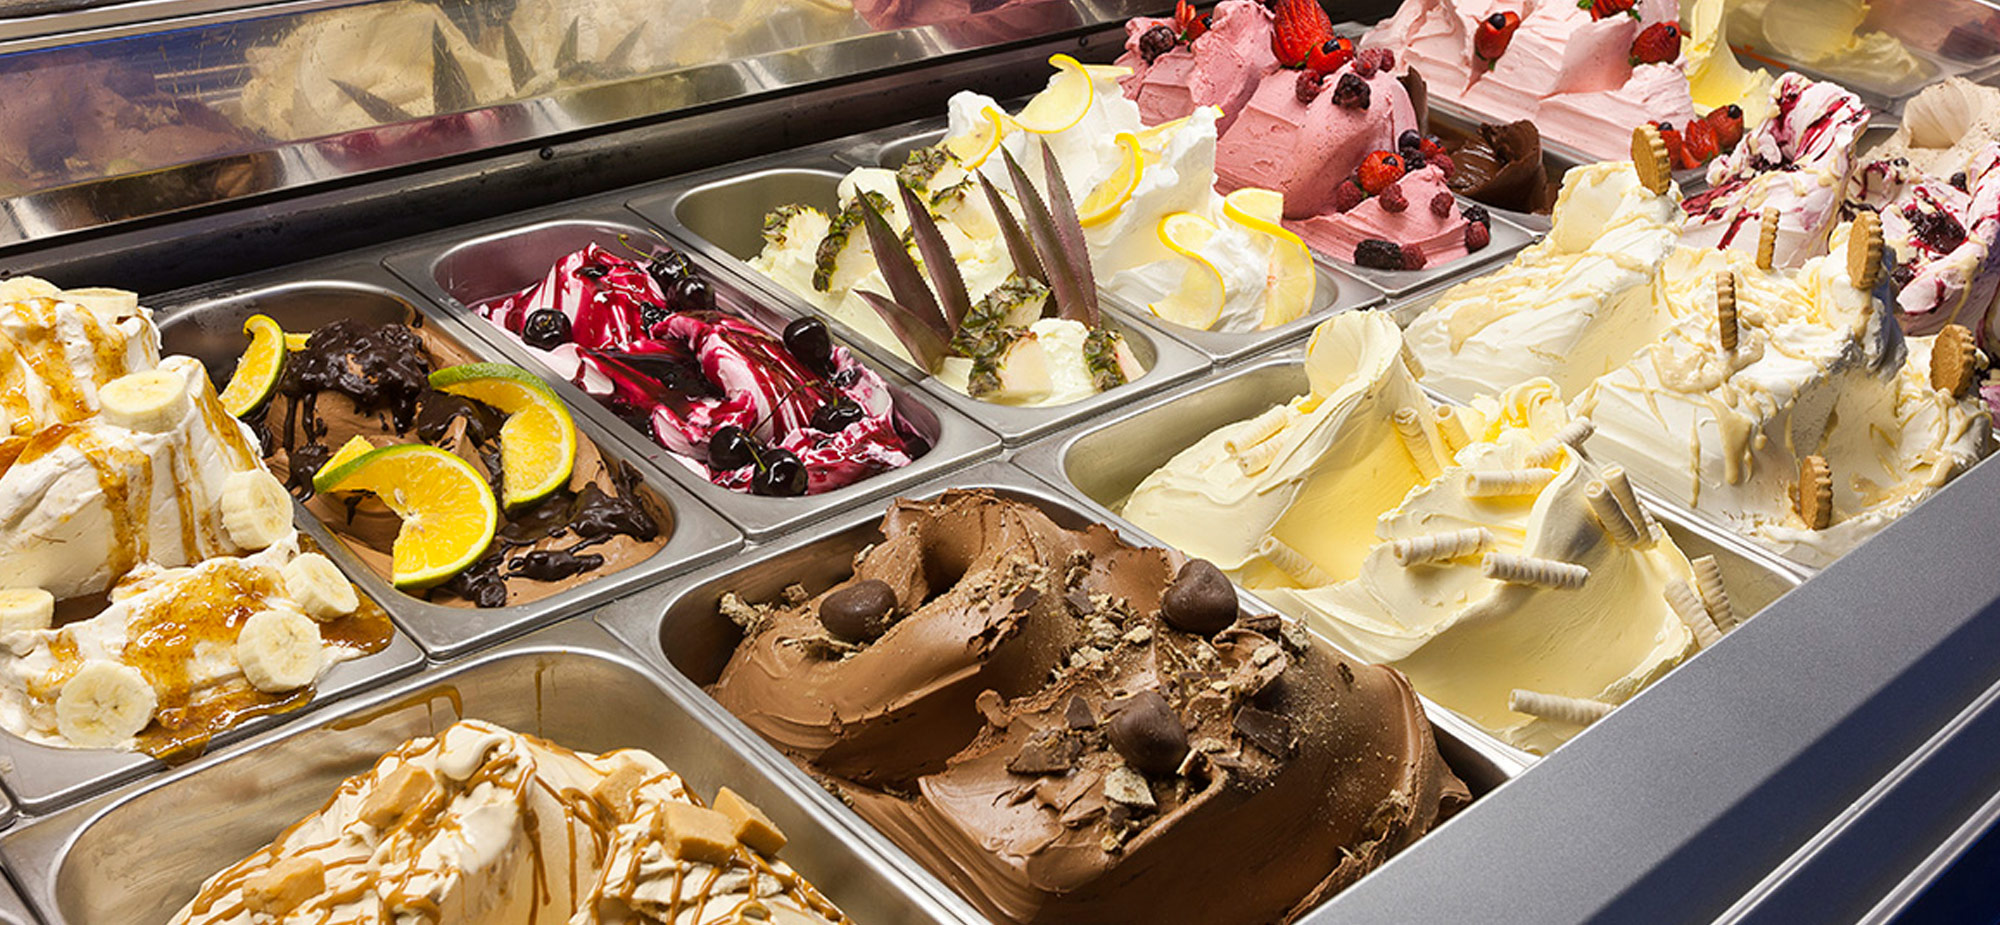 how to tell if its real gelato